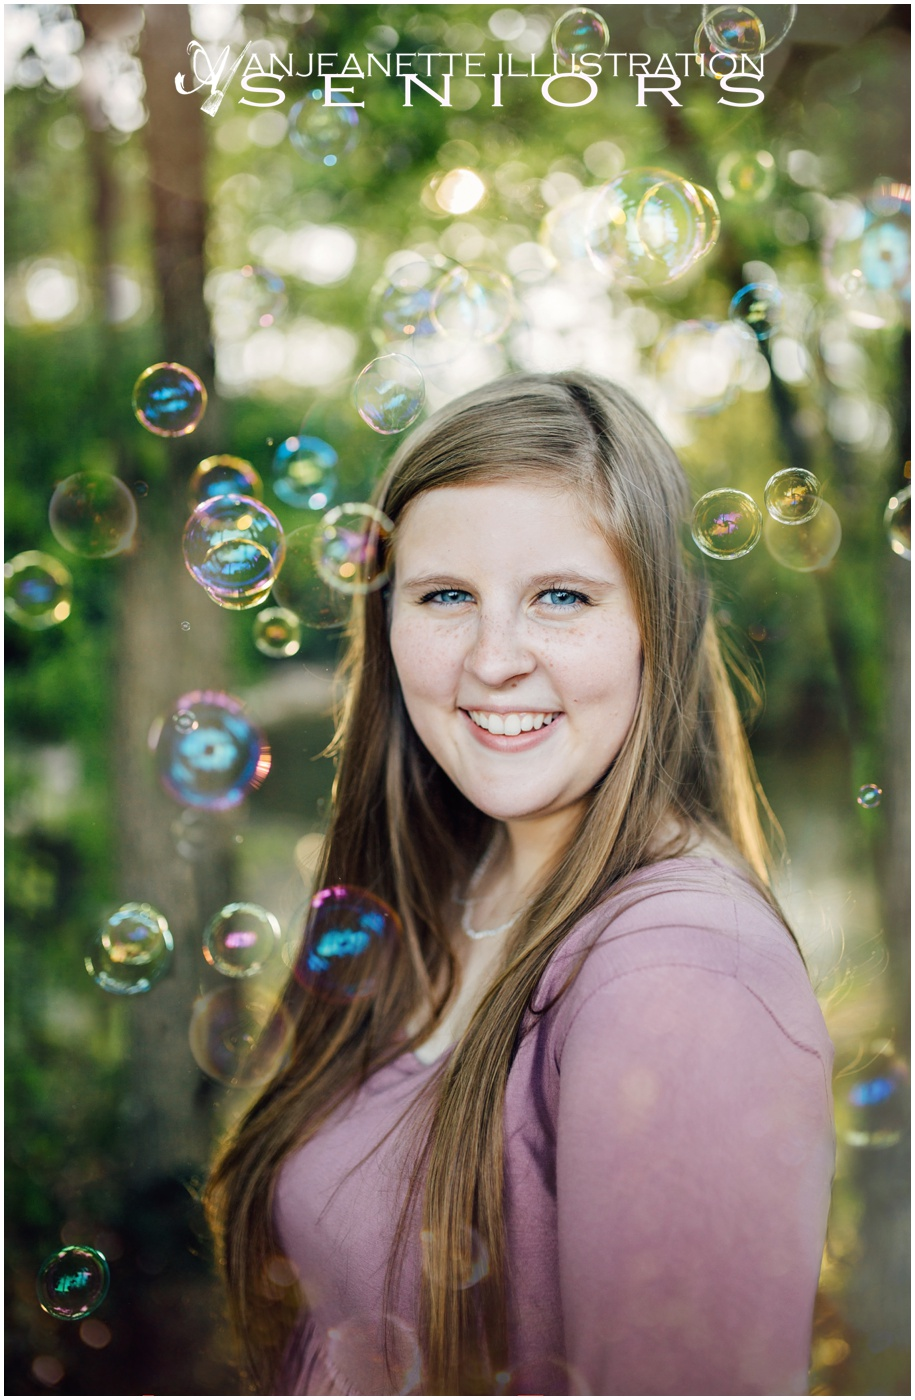 top Hendersonville Tn SENIOR photographer Anjeanette Illustration seniors photography Nashville Senior picture Hendersonville Tn